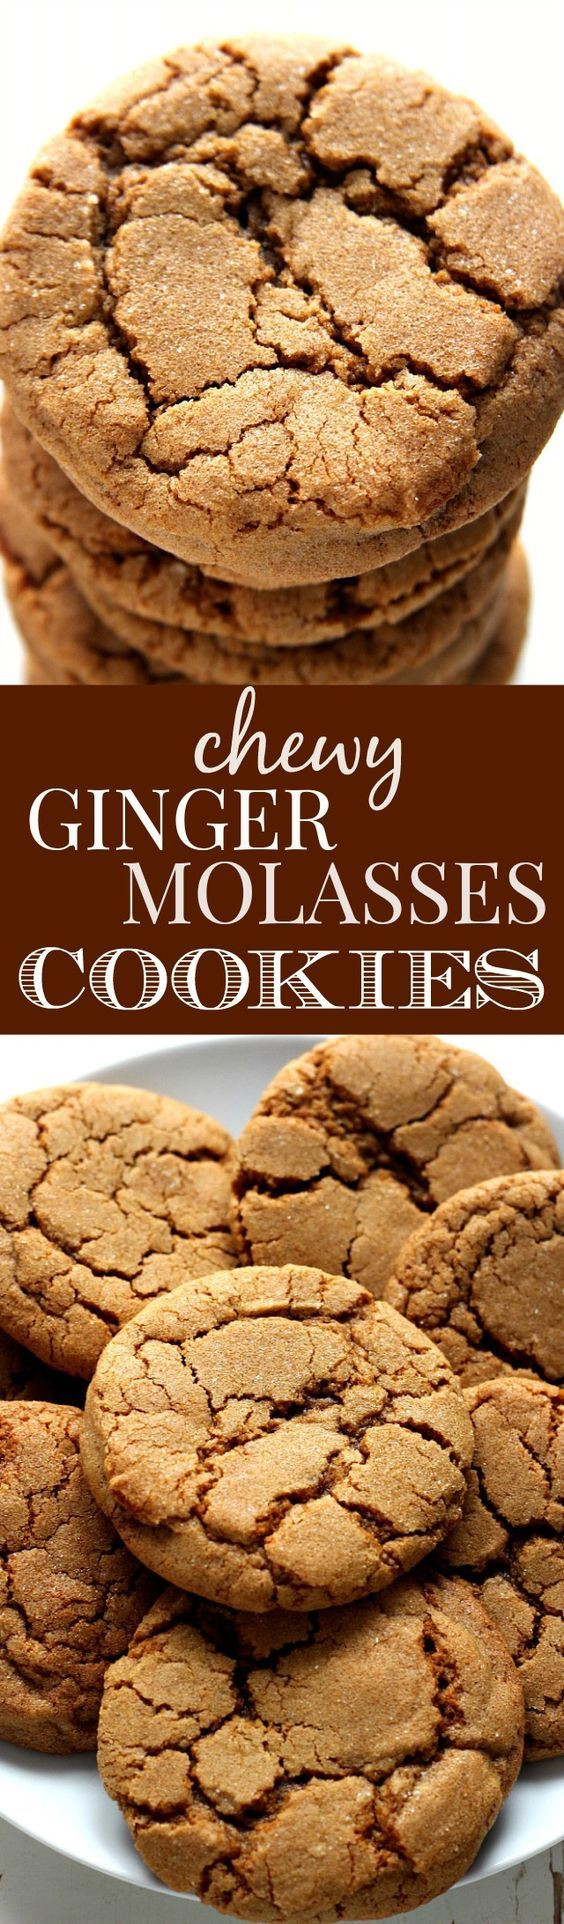 Chewy Ginger Molasses Cookies  Pinterest • The world's catalog of ideas